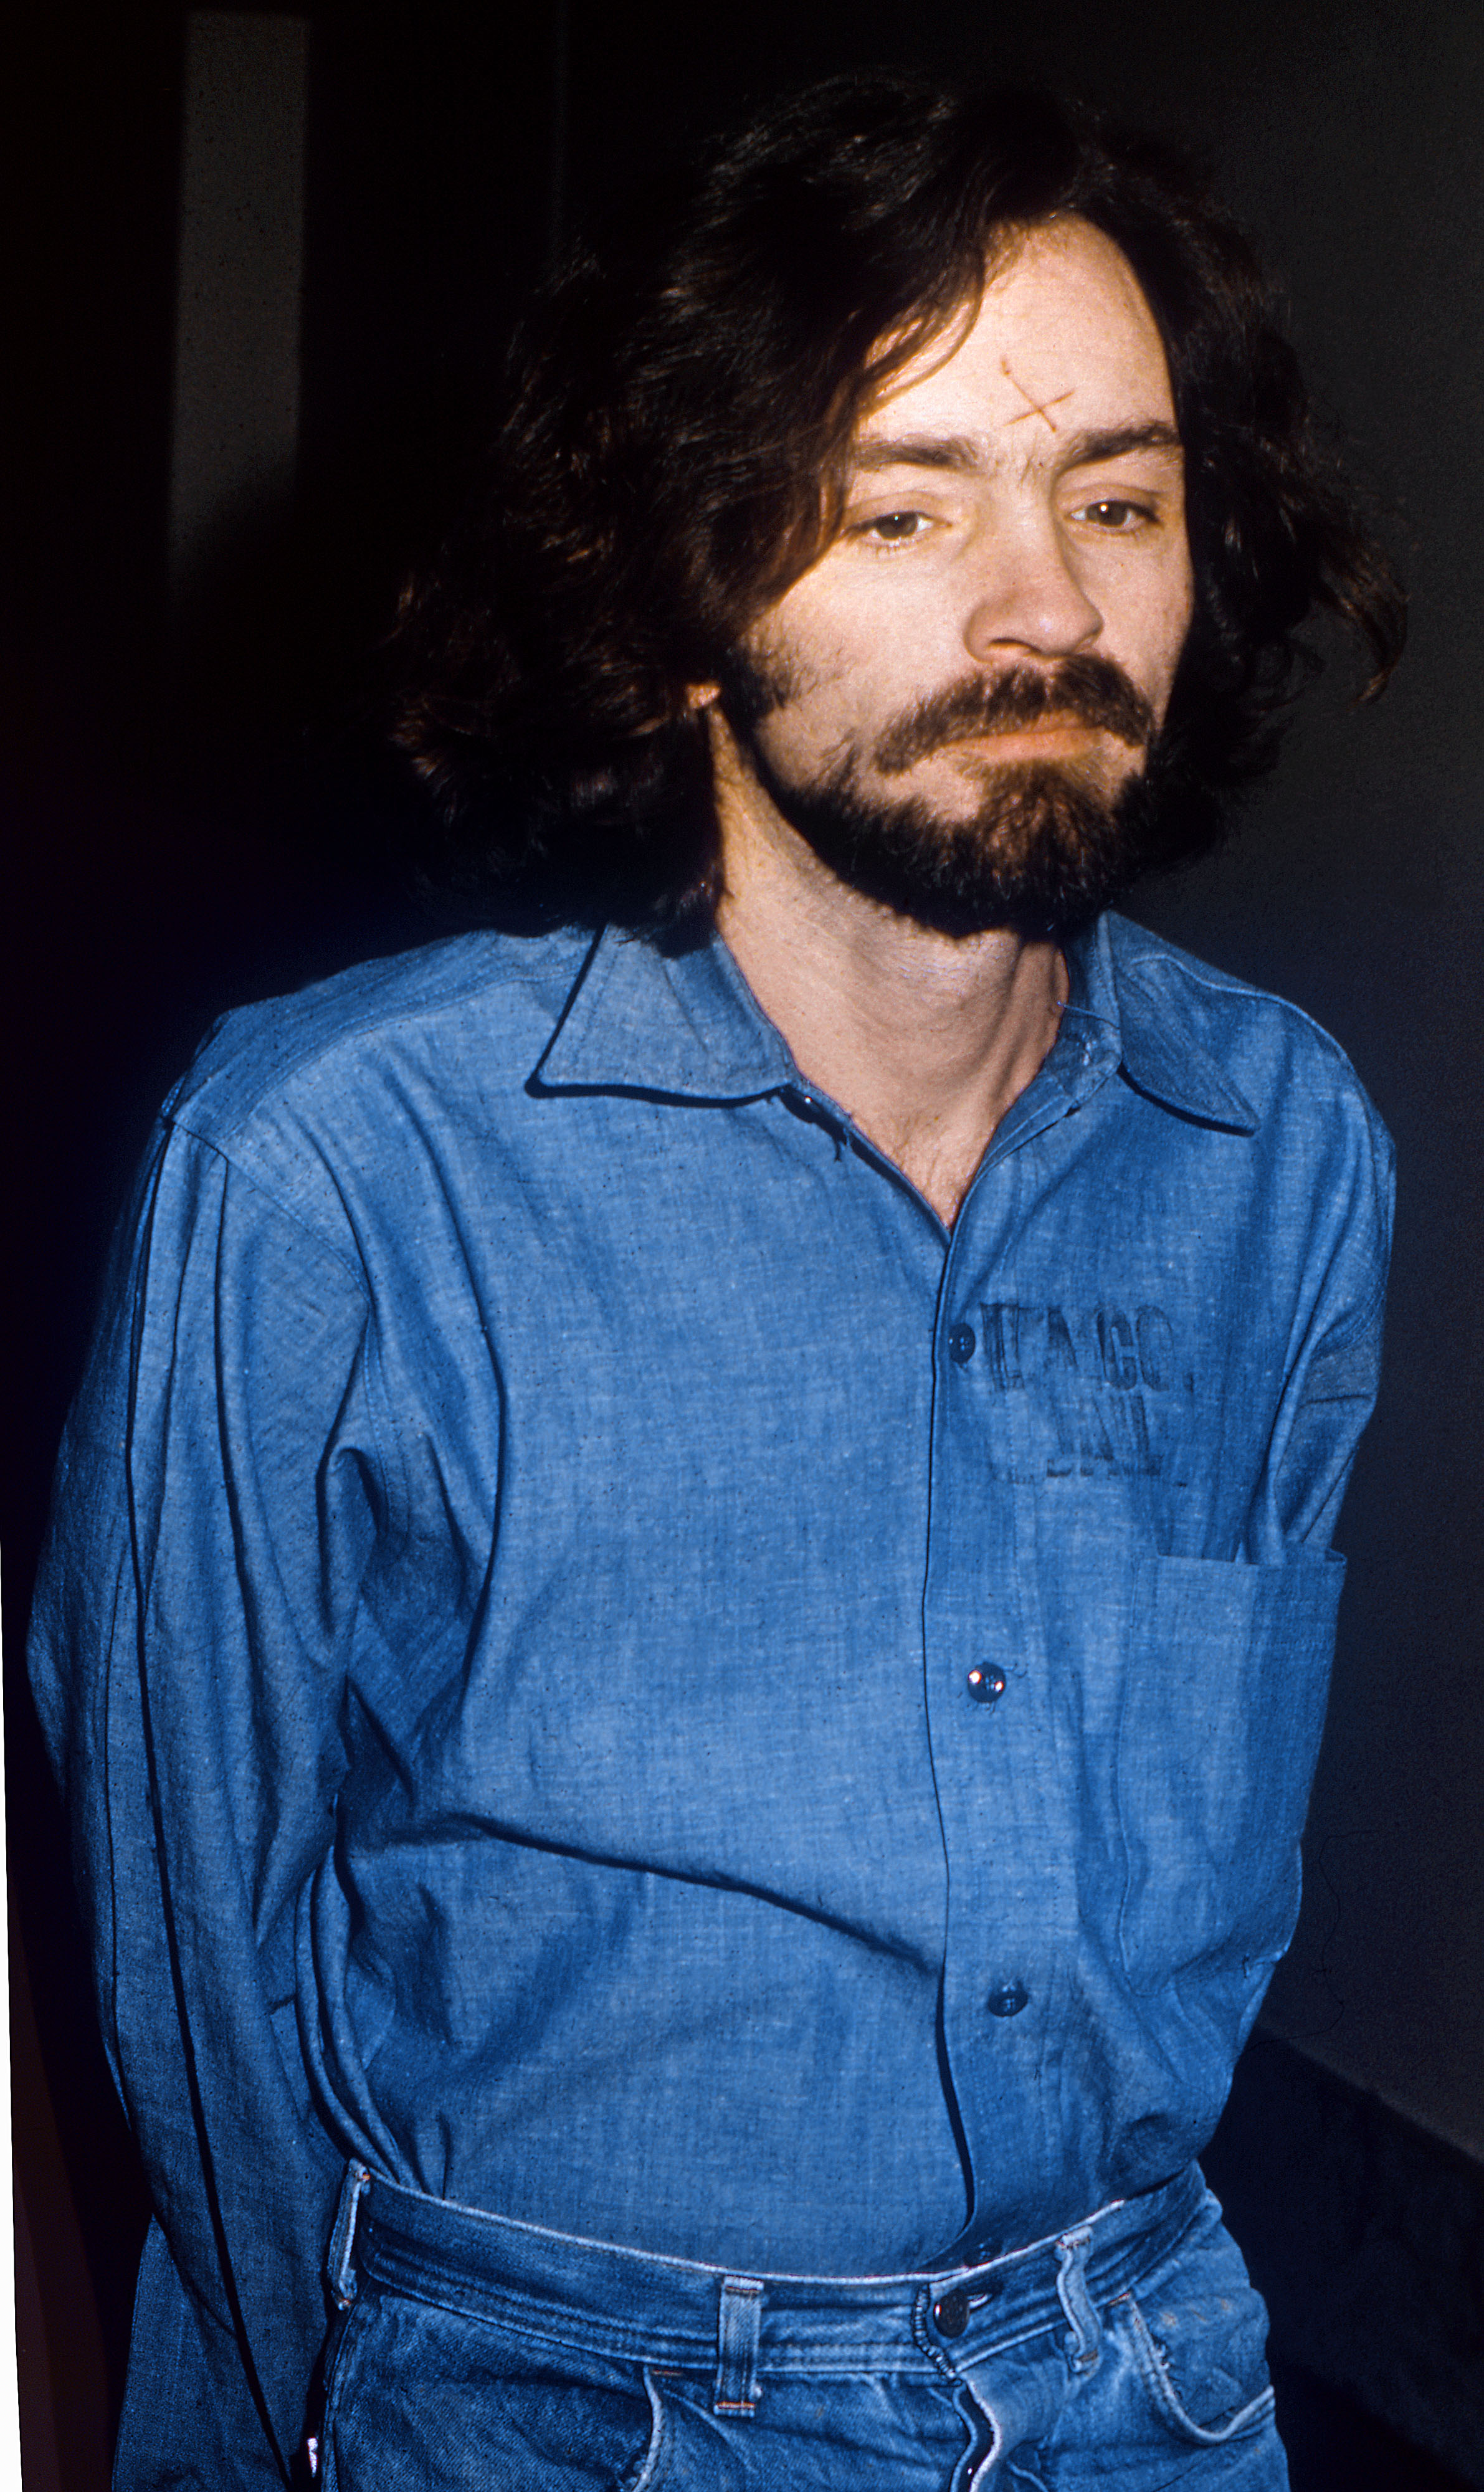 4 Charles Manson Facts You Had No Idea About, Like His